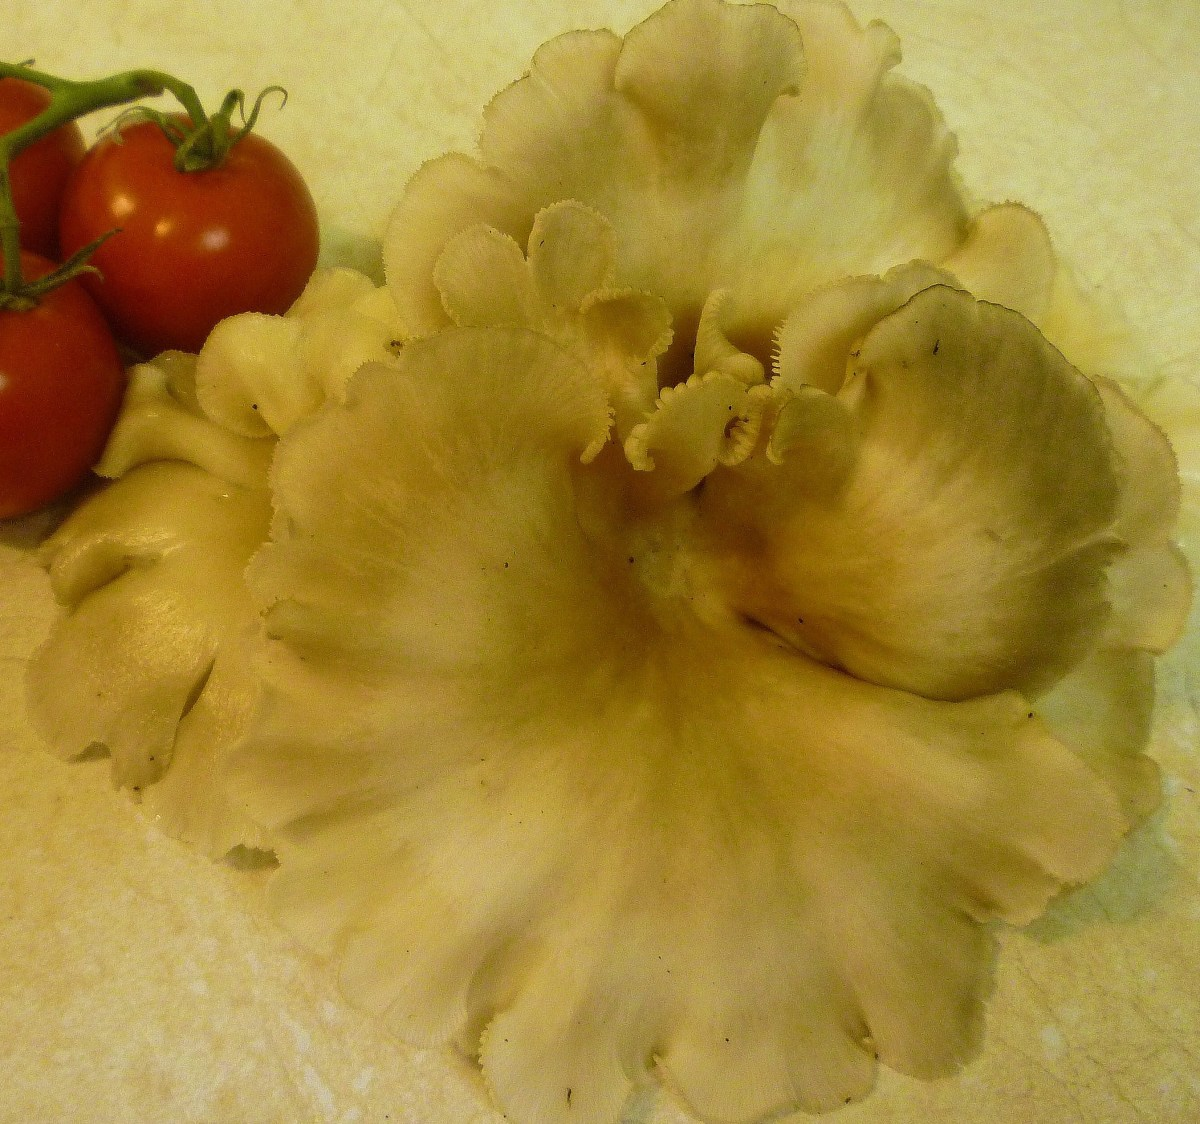 Displayed next to some Campari tomatoes so that the size of this large mushroom can be appreciated